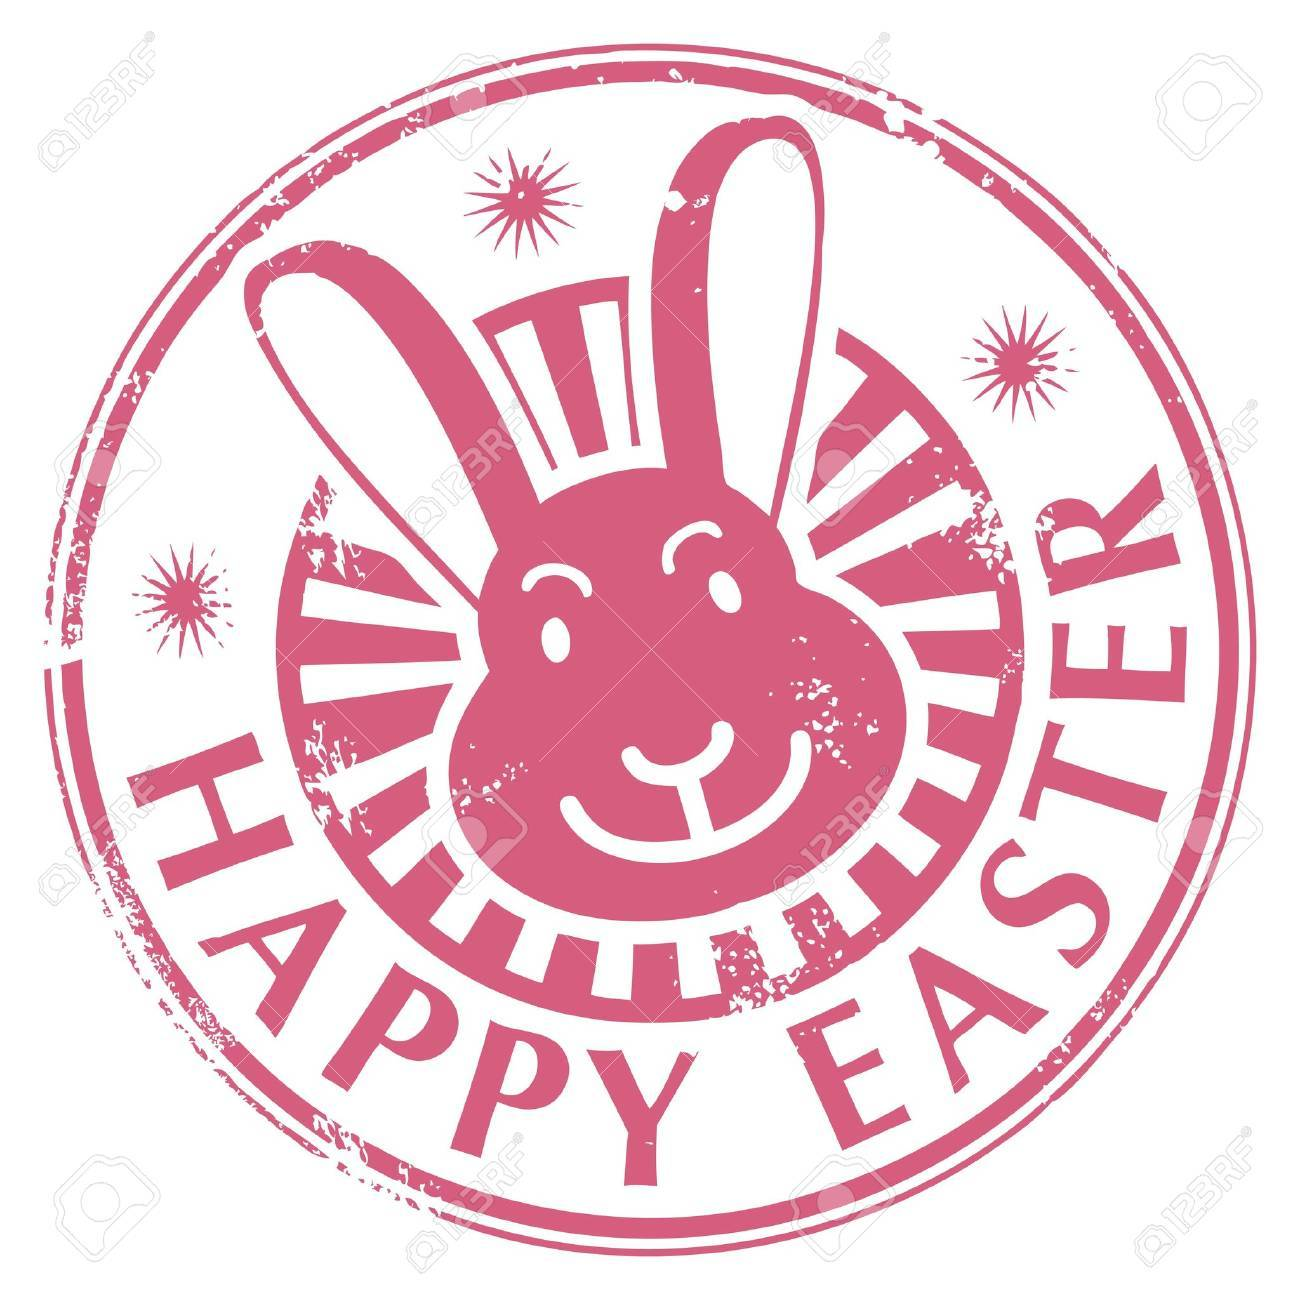 Grunge Rubber Stamp With Bunny And The Text Happy Easter Written Inside Stock Vector